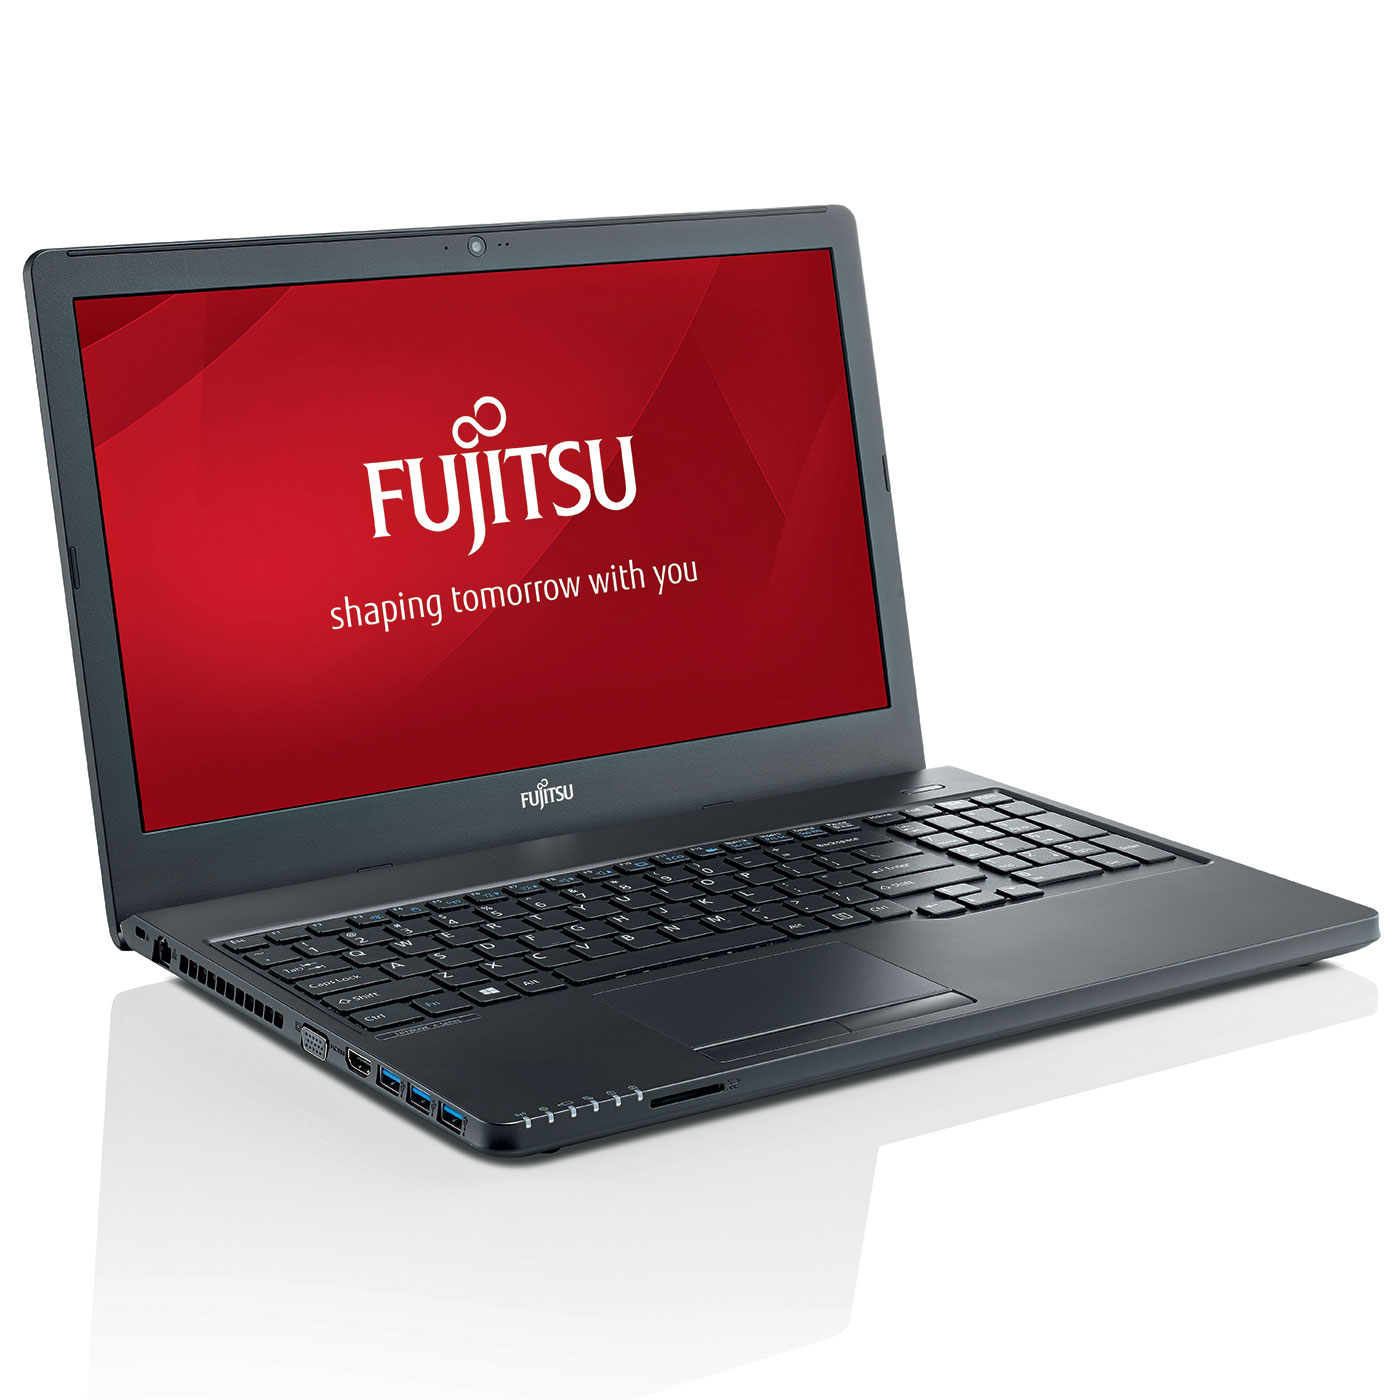 fujitsu lifebook a555 vfy a5550m45aofr pc portable. Black Bedroom Furniture Sets. Home Design Ideas